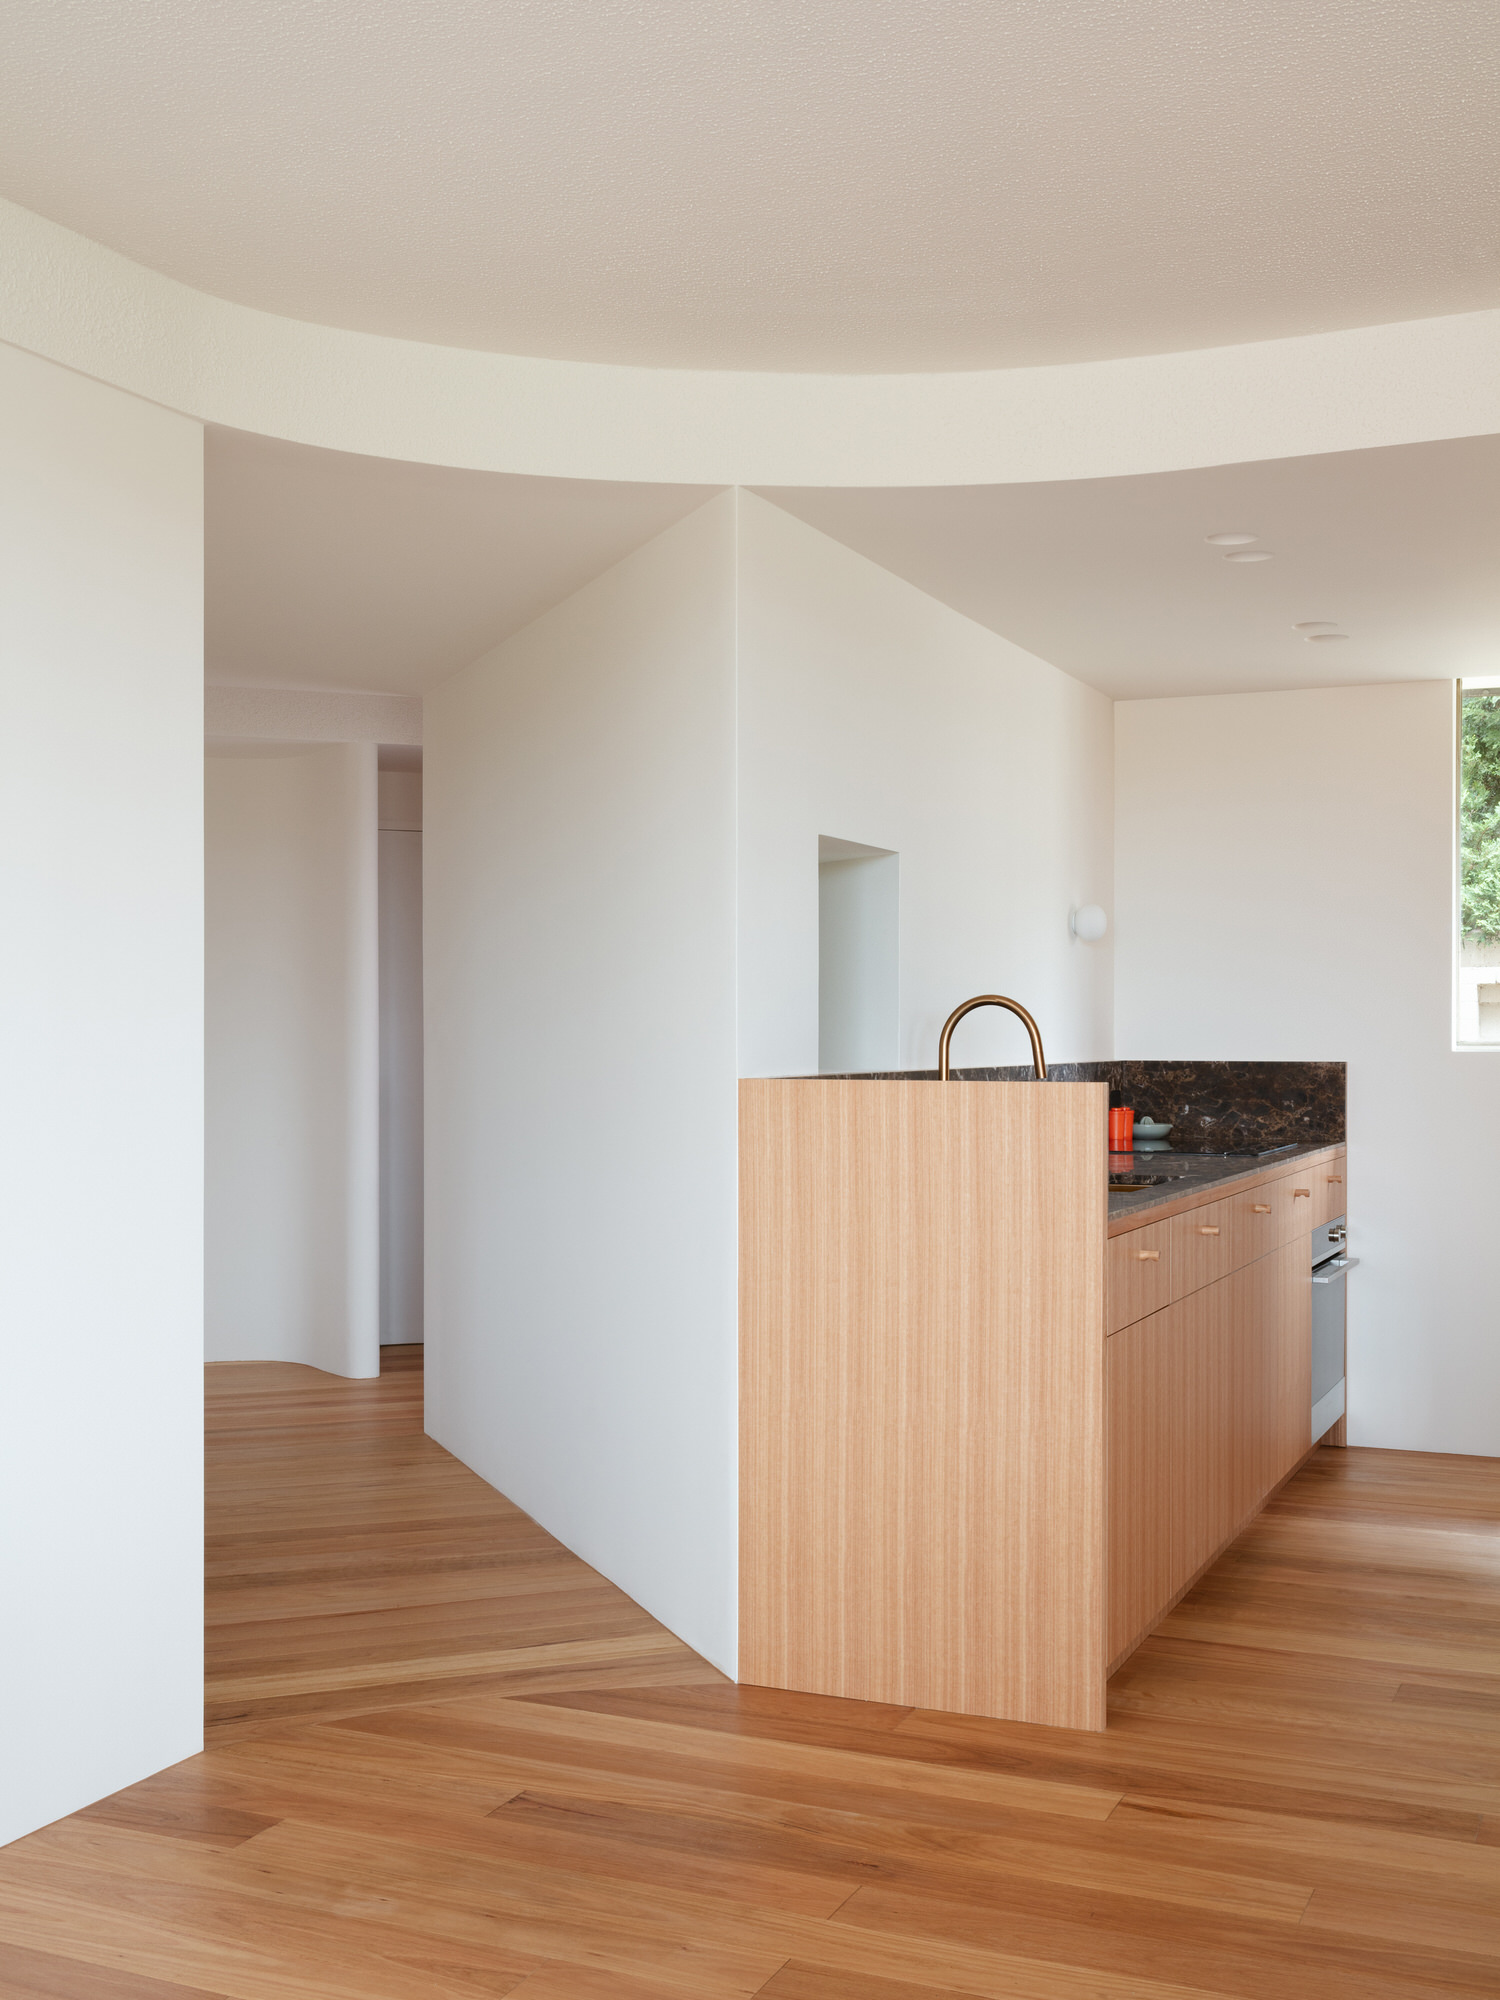 MB Apartment in Drummoyne by Bokey Grant Architects.